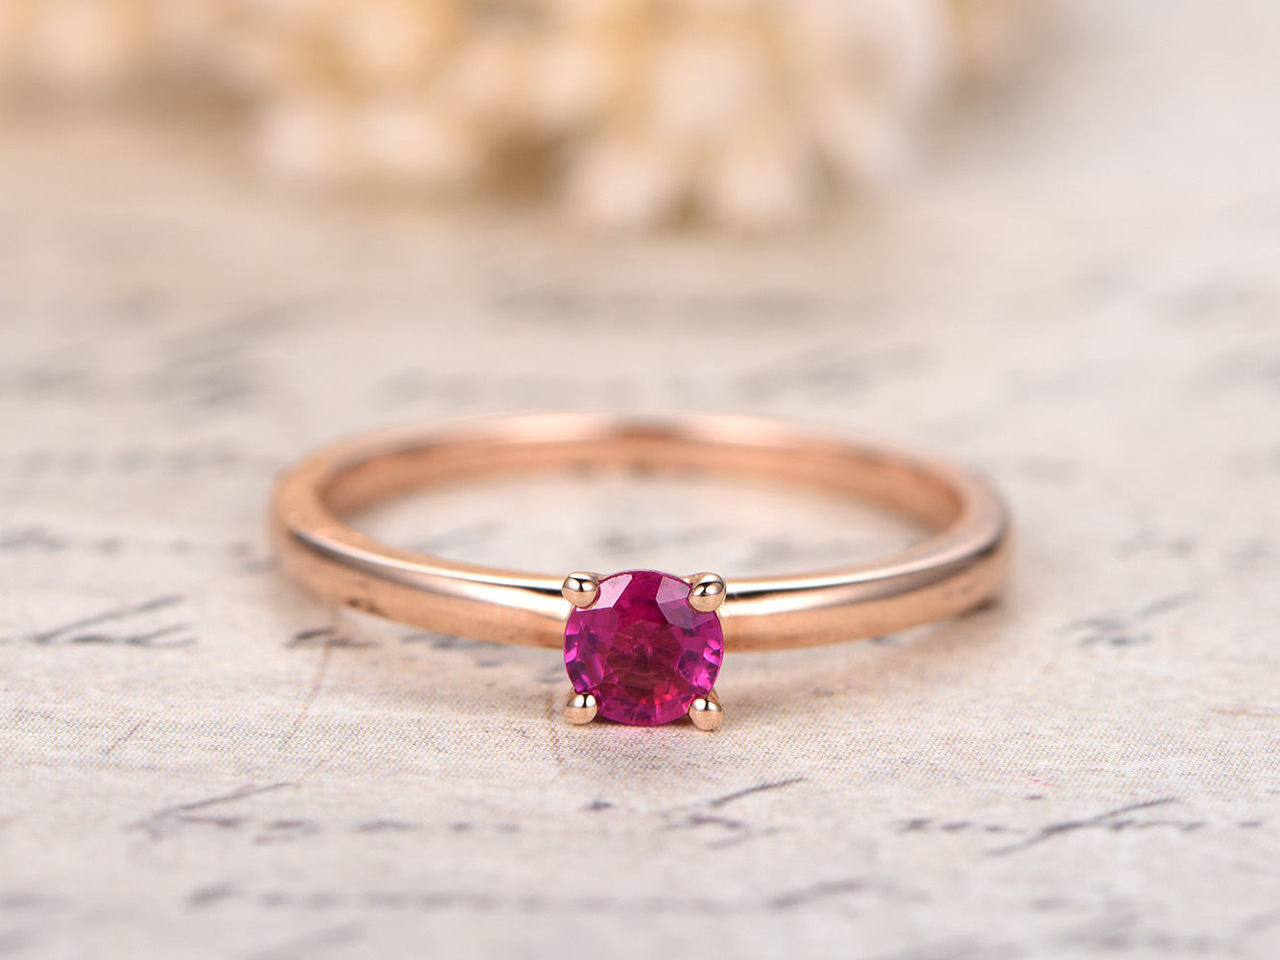 4mm round ruby wedding ring plain band bridal ringruby engagement 4mm round ruby wedding ring plain band bridal ringruby engagement ring solid junglespirit Image collections